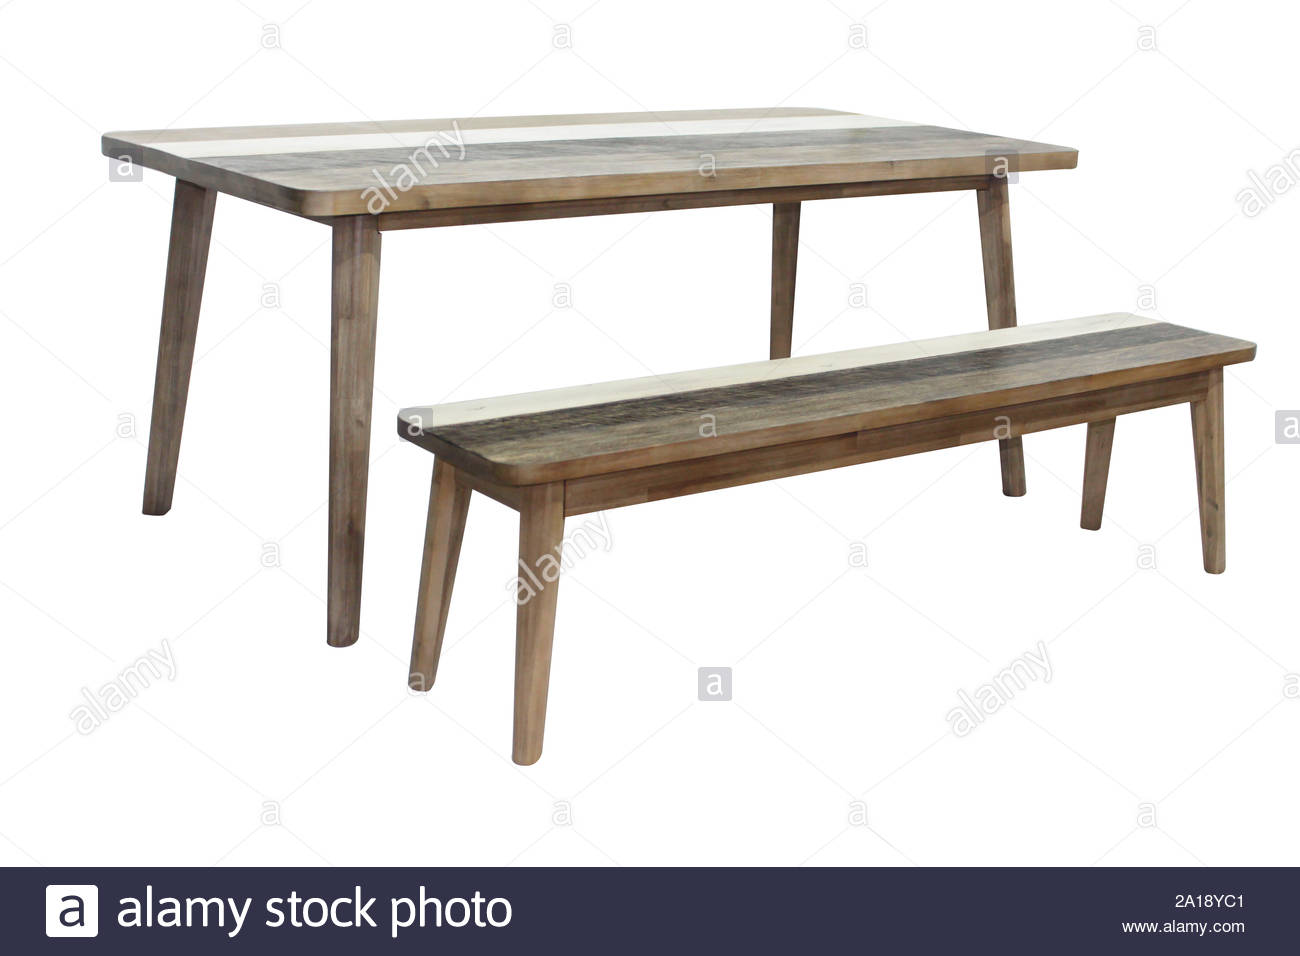 Picture of: Oval Conference Table Stock Photos Oval Conference Table Stock Images Page 2 Alamy